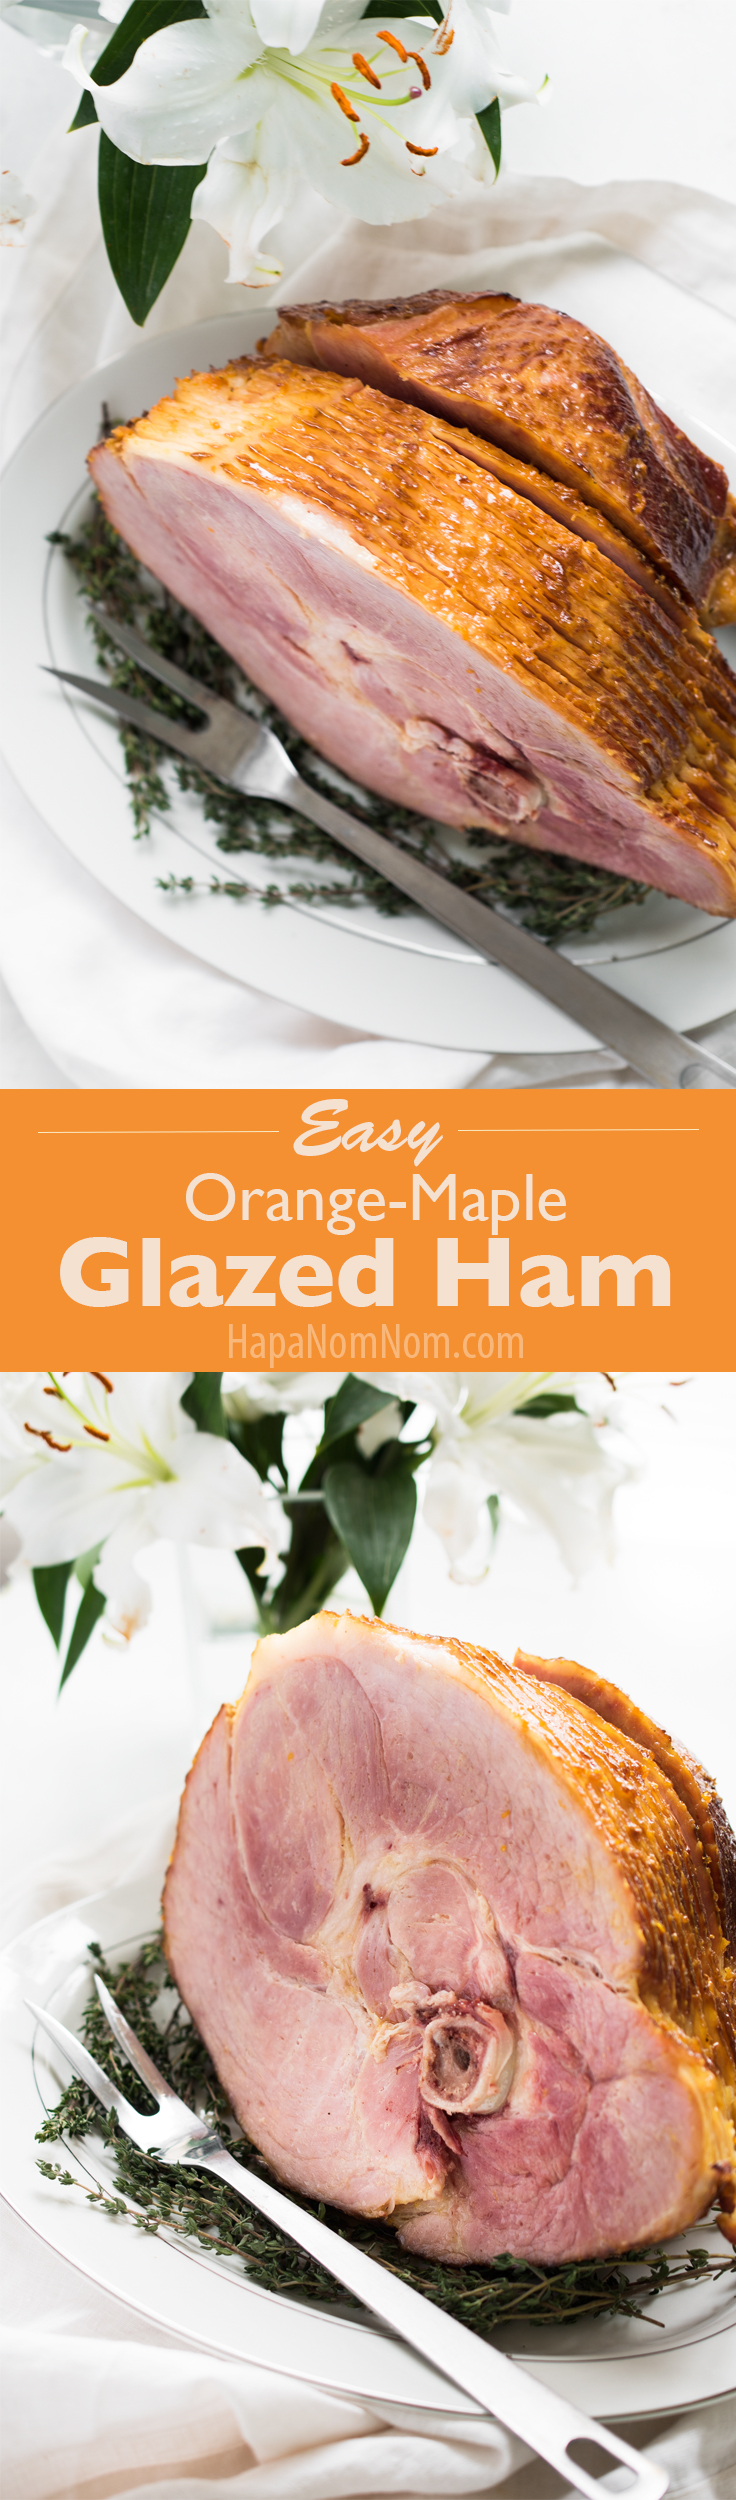 This easy Orange-Maple Glazed Ham is perfect for the holidays, feeds a crowd, and takes only minutes of prep time!